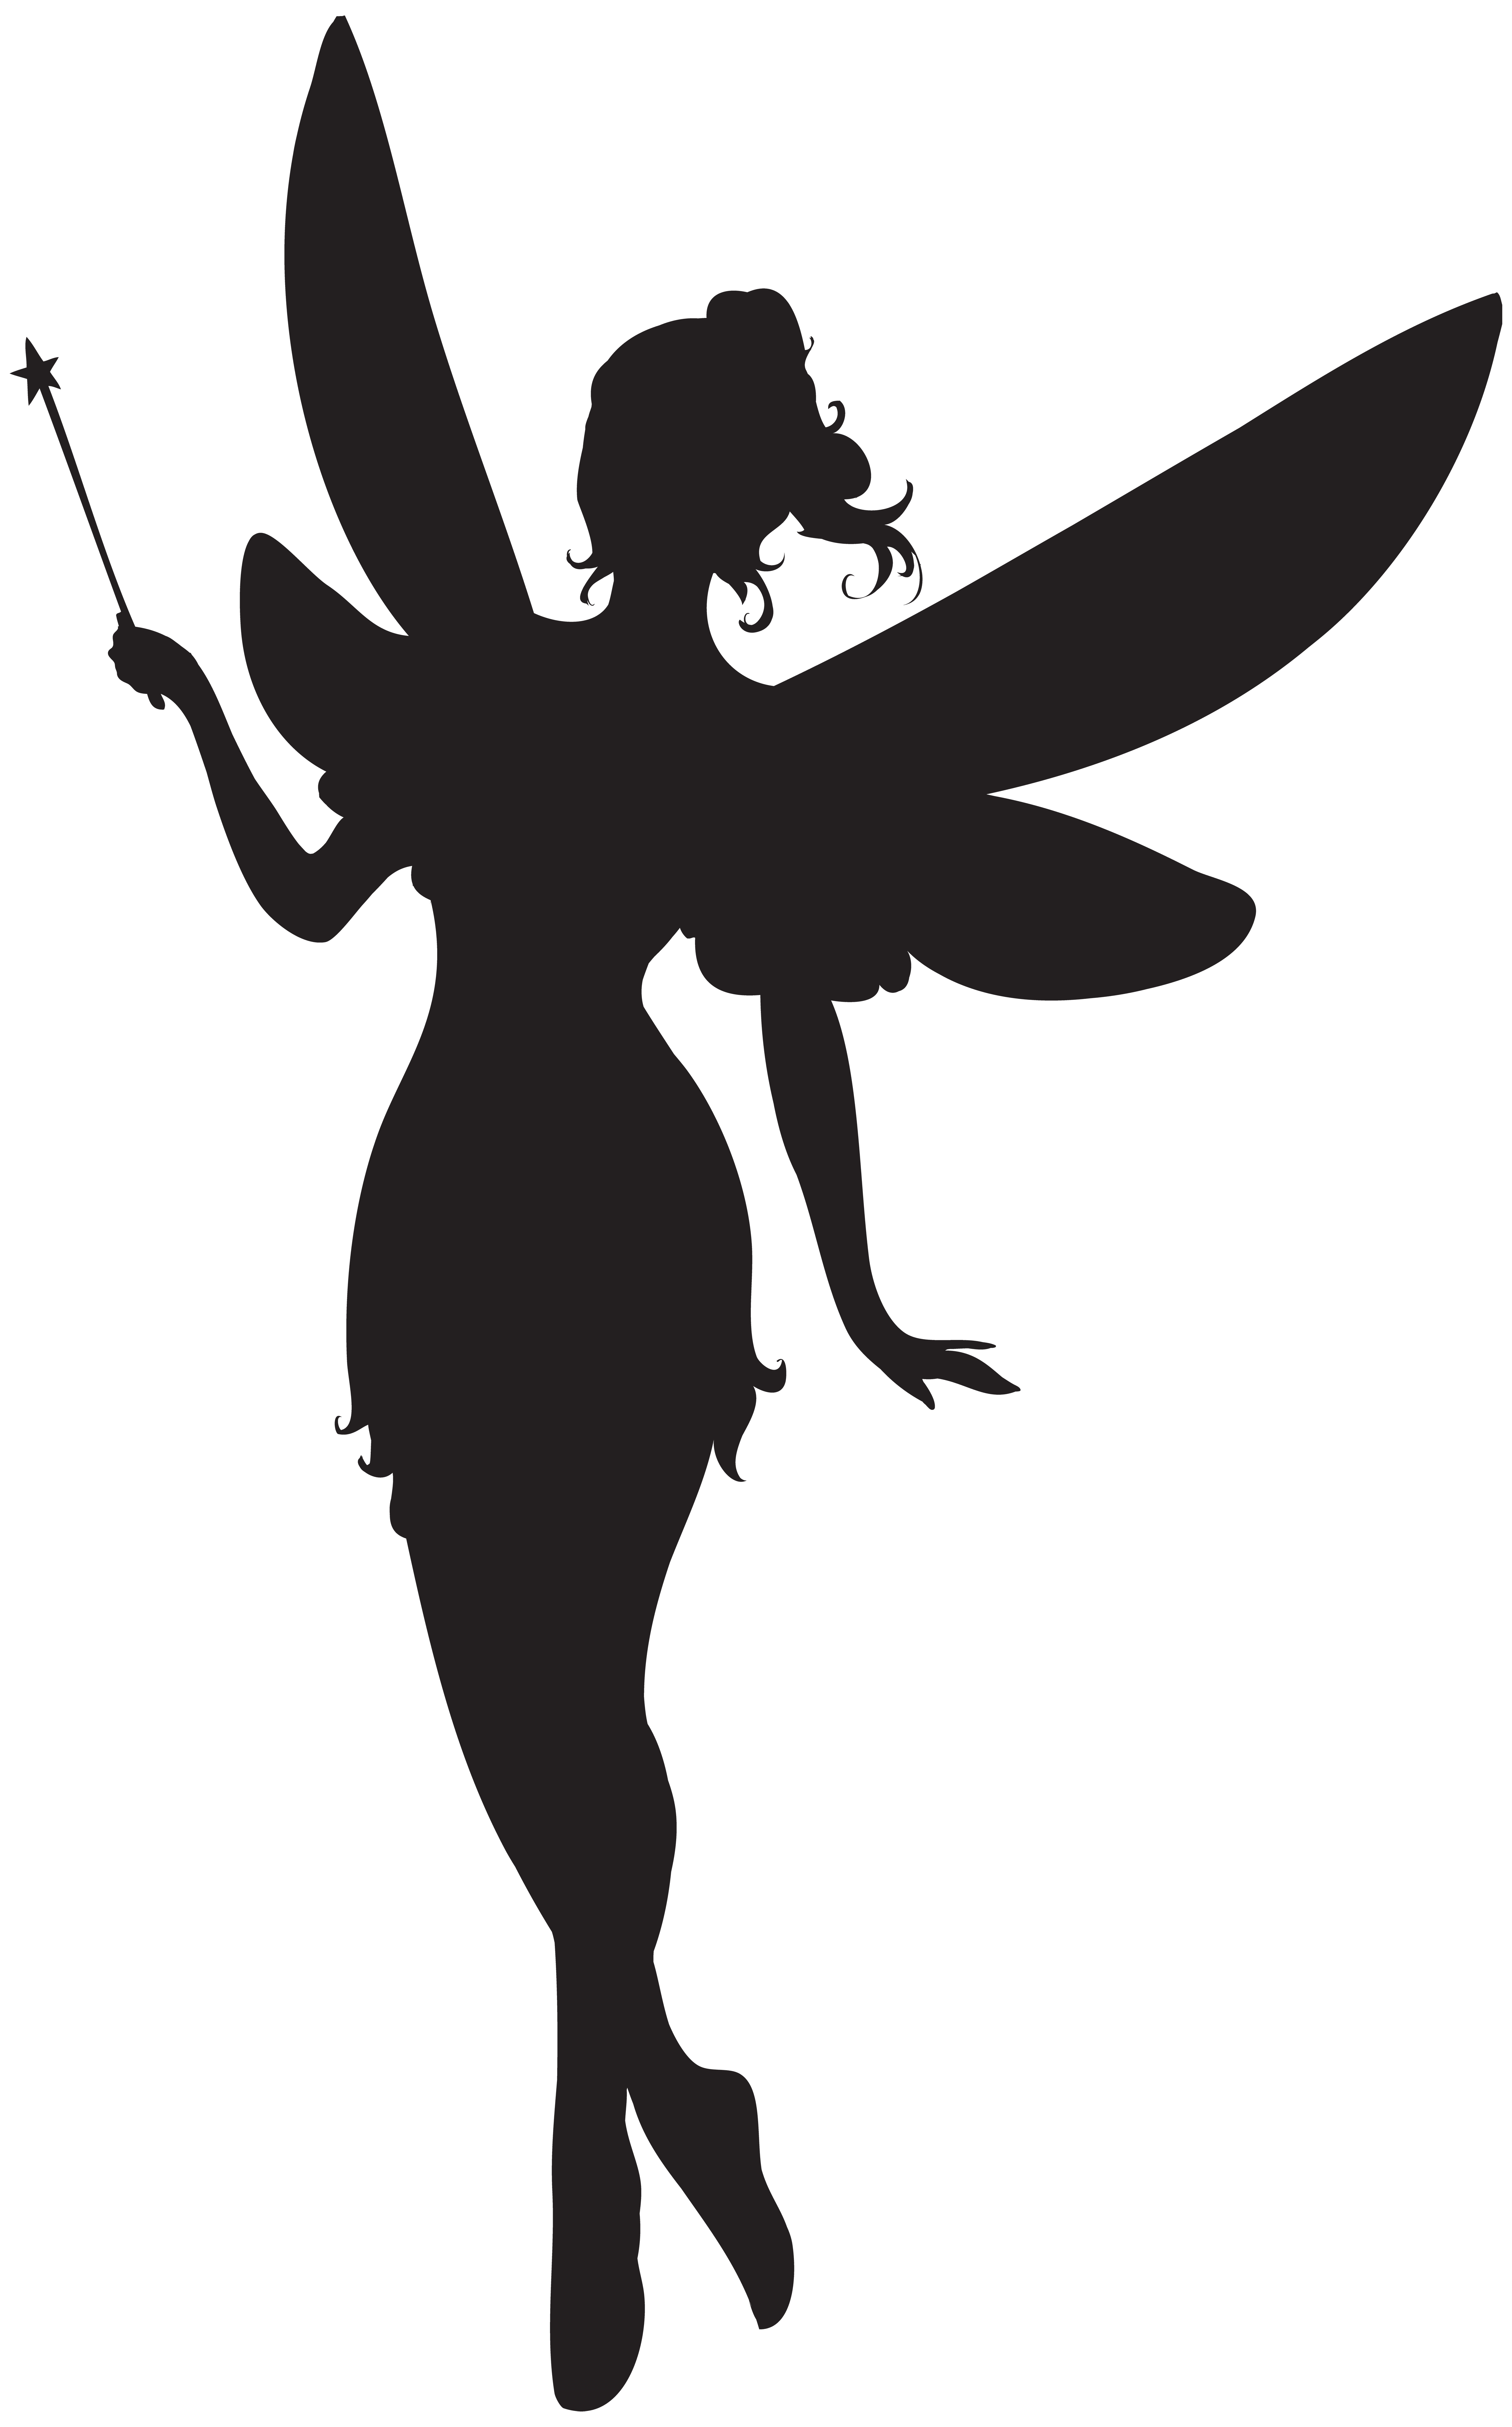 picture transparent Magic clipart hand holding wand. Fairy silhouette at getdrawings.